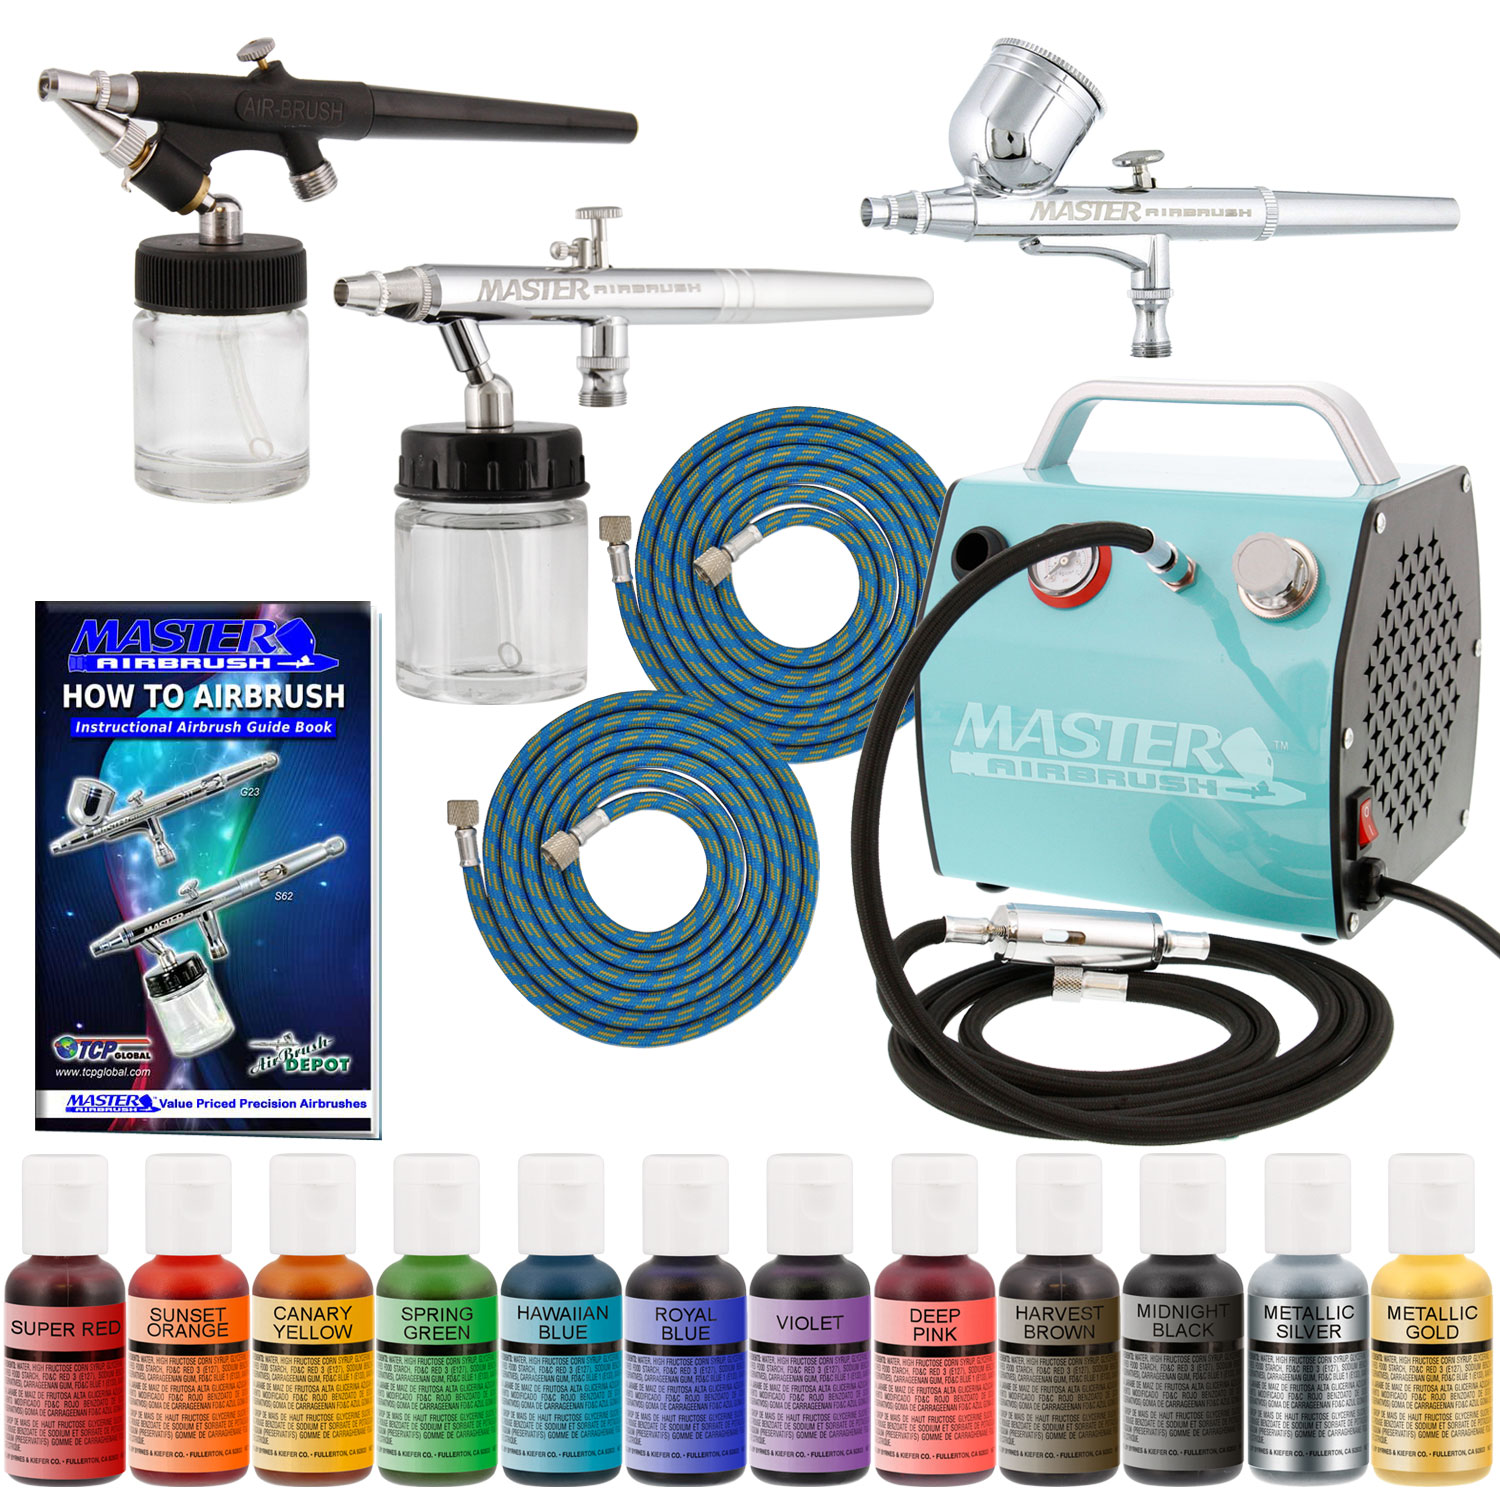 Artlogic Cake Decorating Airbrush Kit : Pro CAKE DECORATING SYSTEM 3 Airbrush Kit 12 Color Food ...